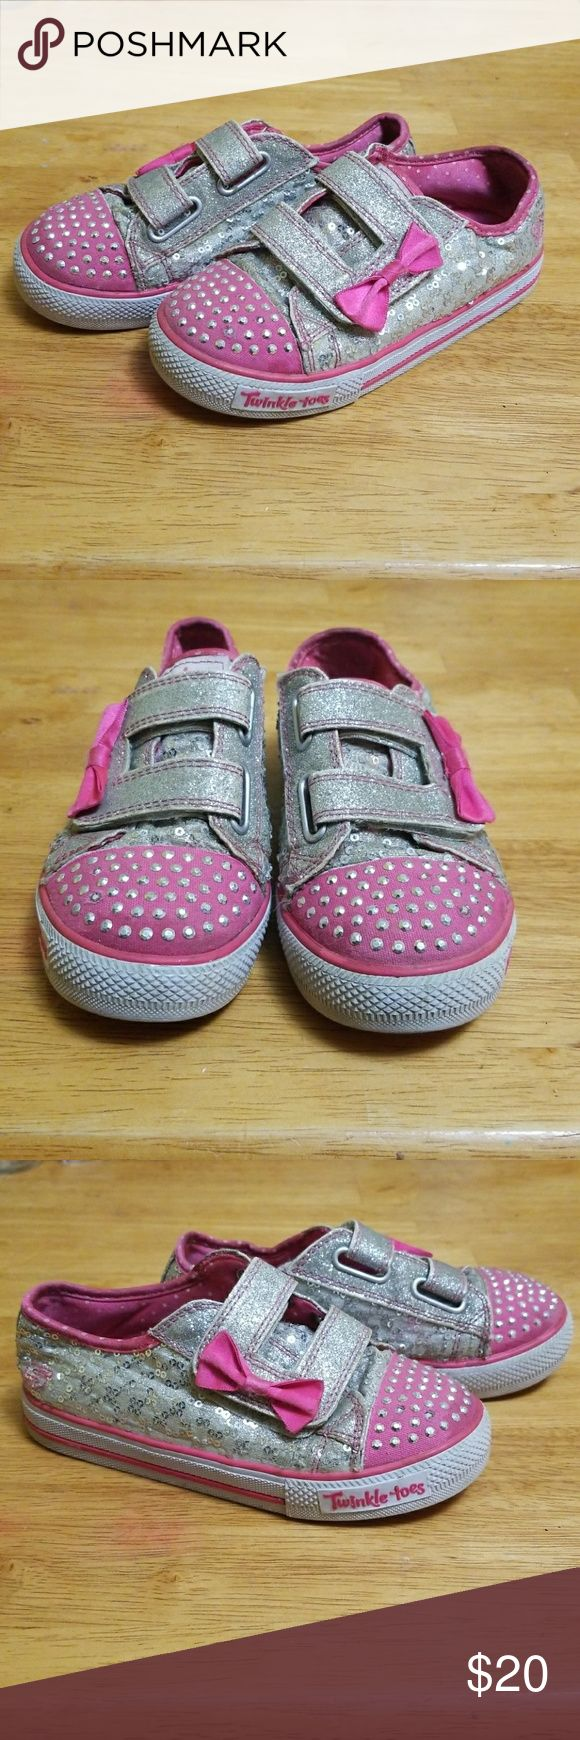 Girls Sketcher Sneaker Light Up Shoes Used.  In great condition. Lights work! Skechers Shoes Sneakers